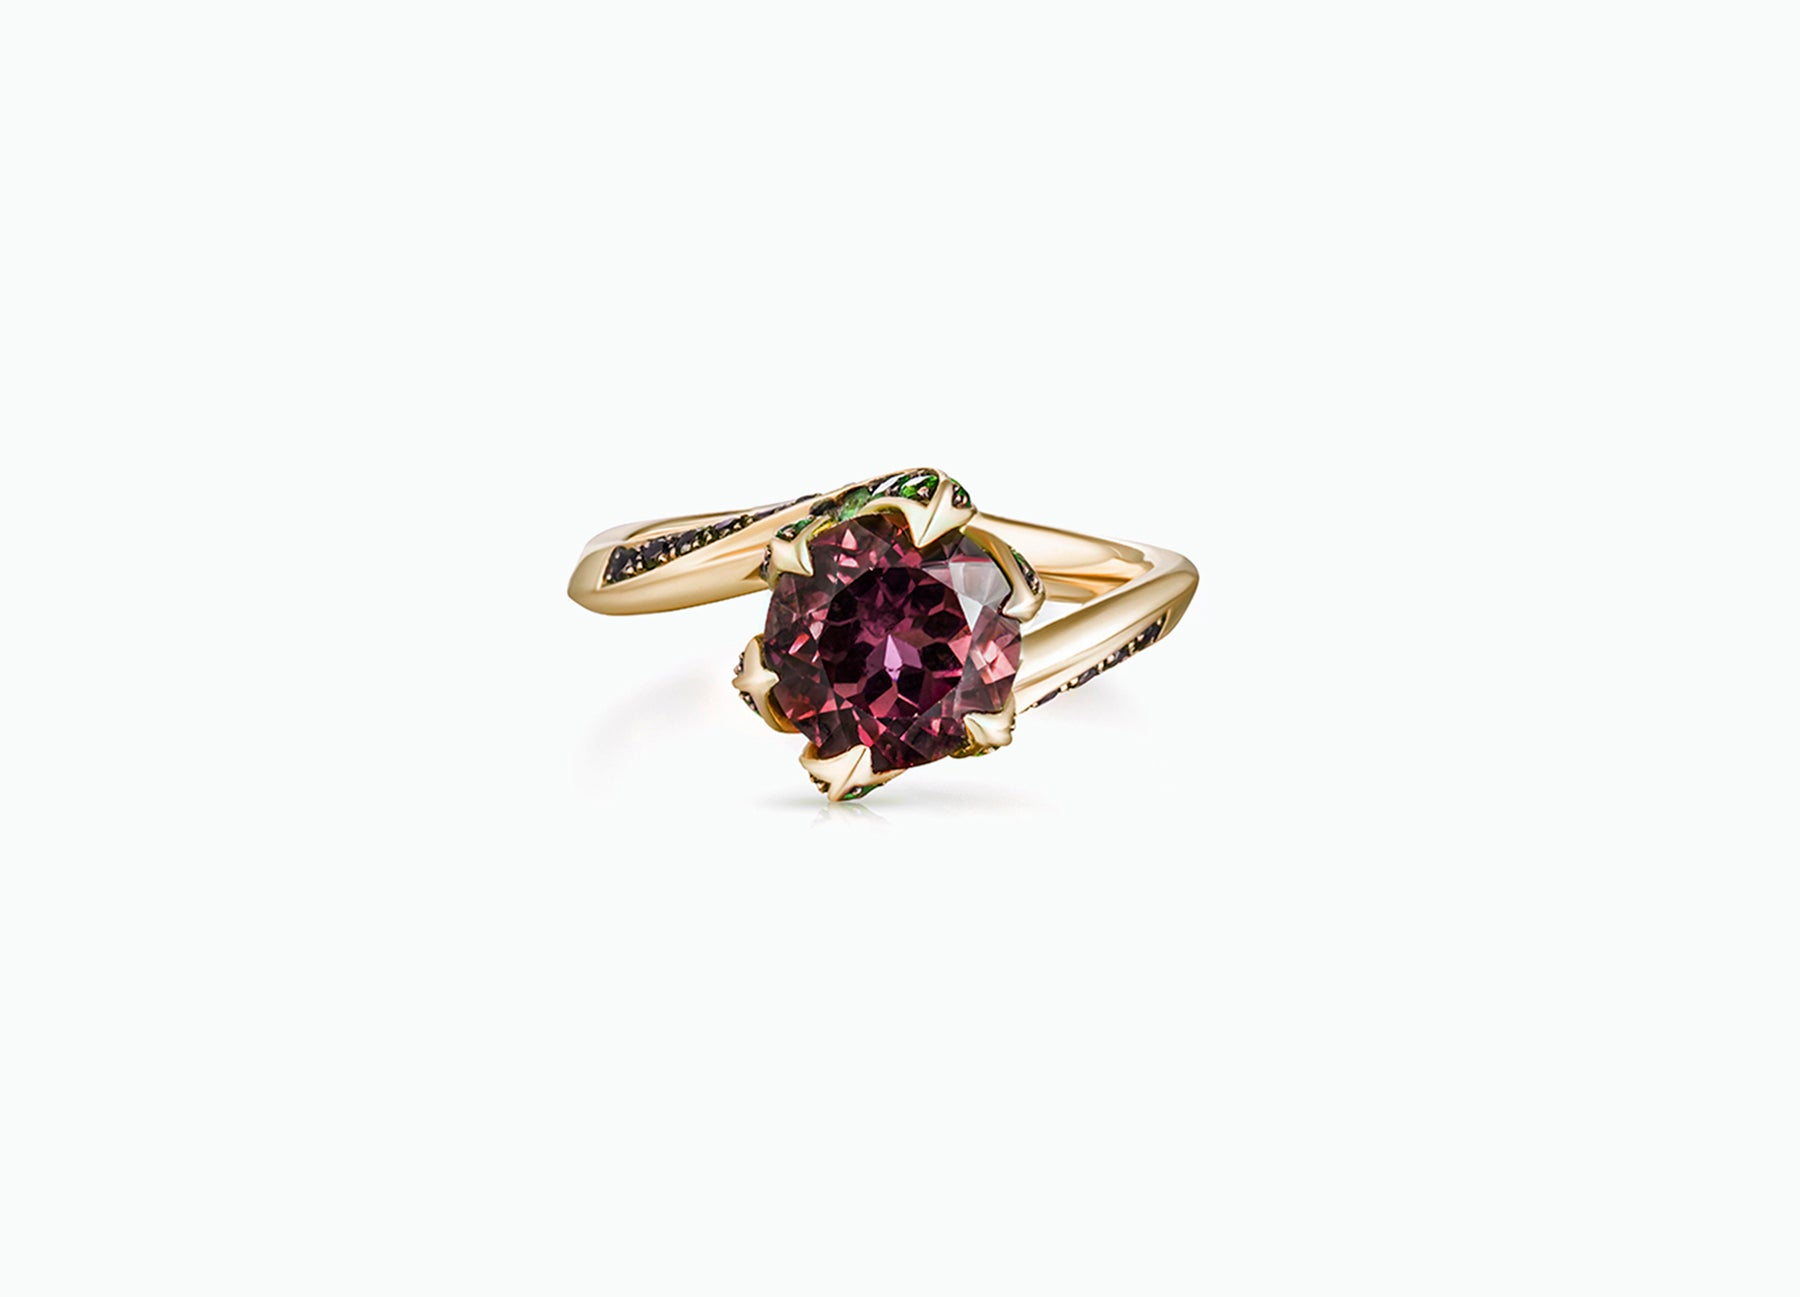 Lily Pad engagement ring in 18K yellow gold set with a rubellite tourmaline centre stone front view